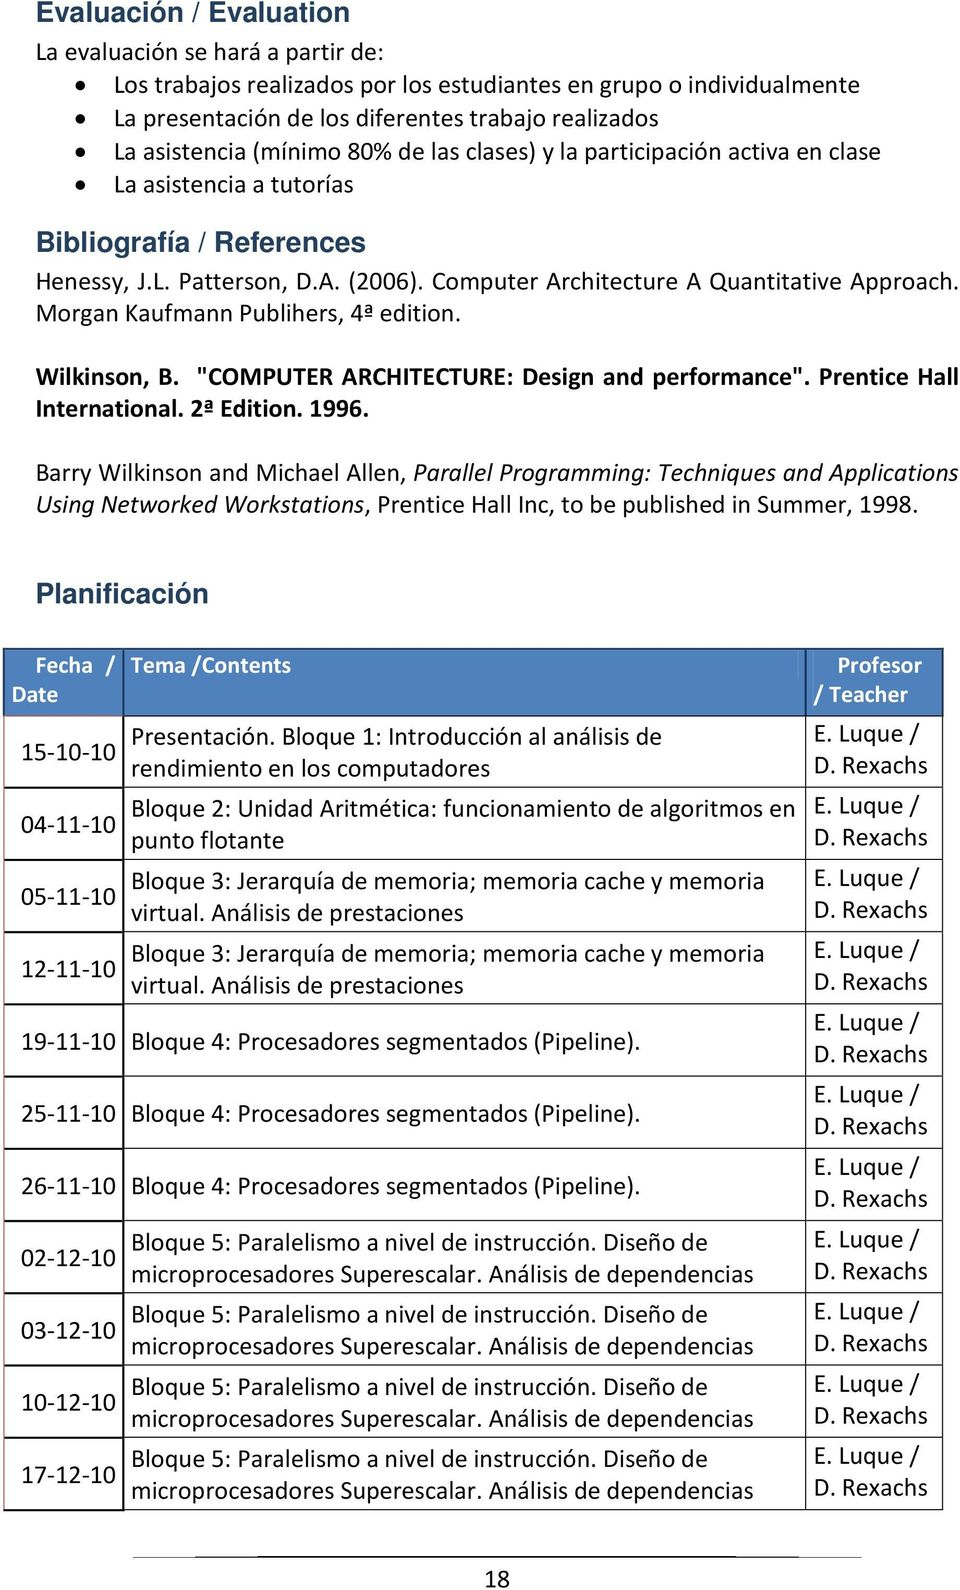 "Morgan Kaufmann Publihers, 4ª edition. Wilkinson, B. ""COMPUTER ARCHITECTURE: Design and performance"". Prentice Hall International. 2ª Edition. 1996."